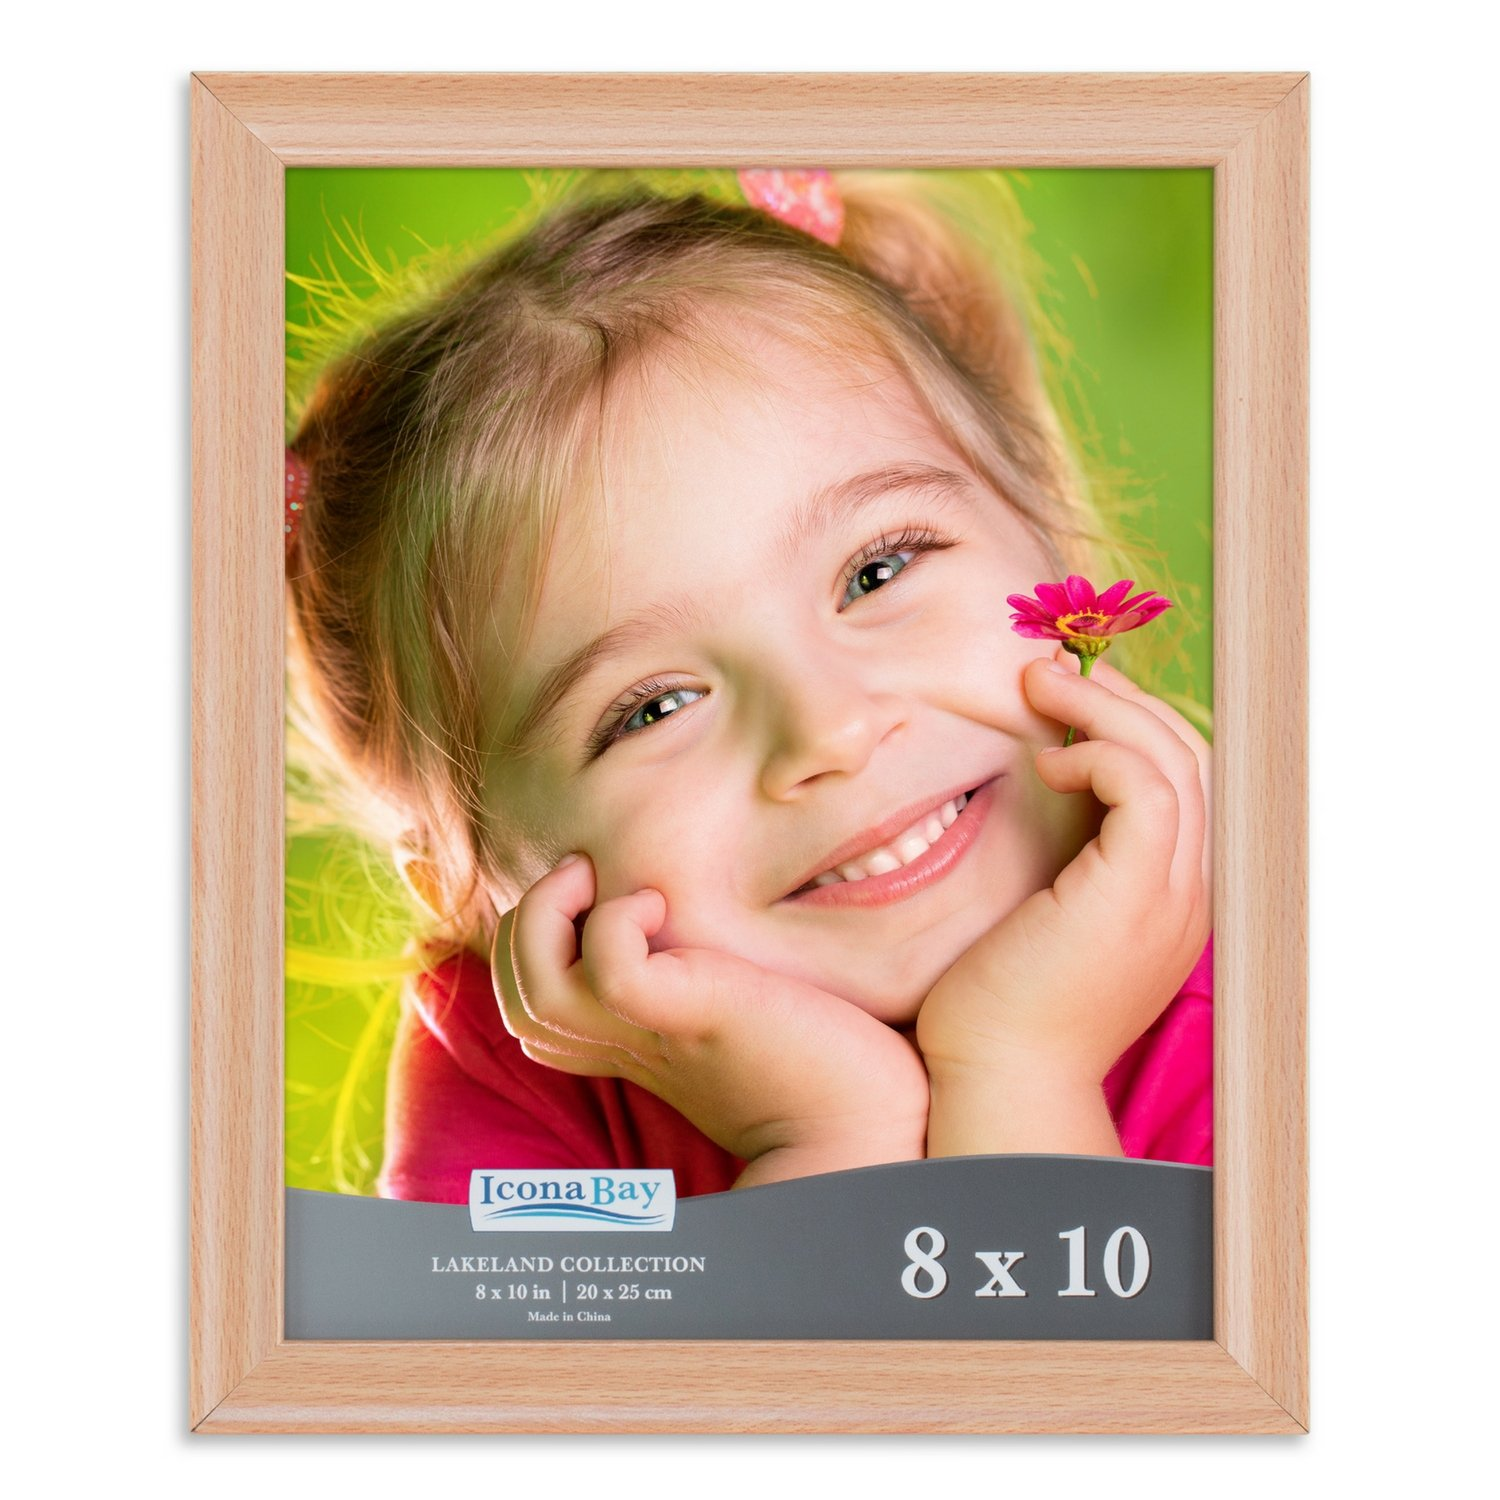 Icona Bay 8 by 10 Inch Picture Frames (8x10, 6 Pack, Beechwood Finish), Photo Frame Set For Wall Hang or Table Top, Lakeland Collection by Icona Bay (Image #3)